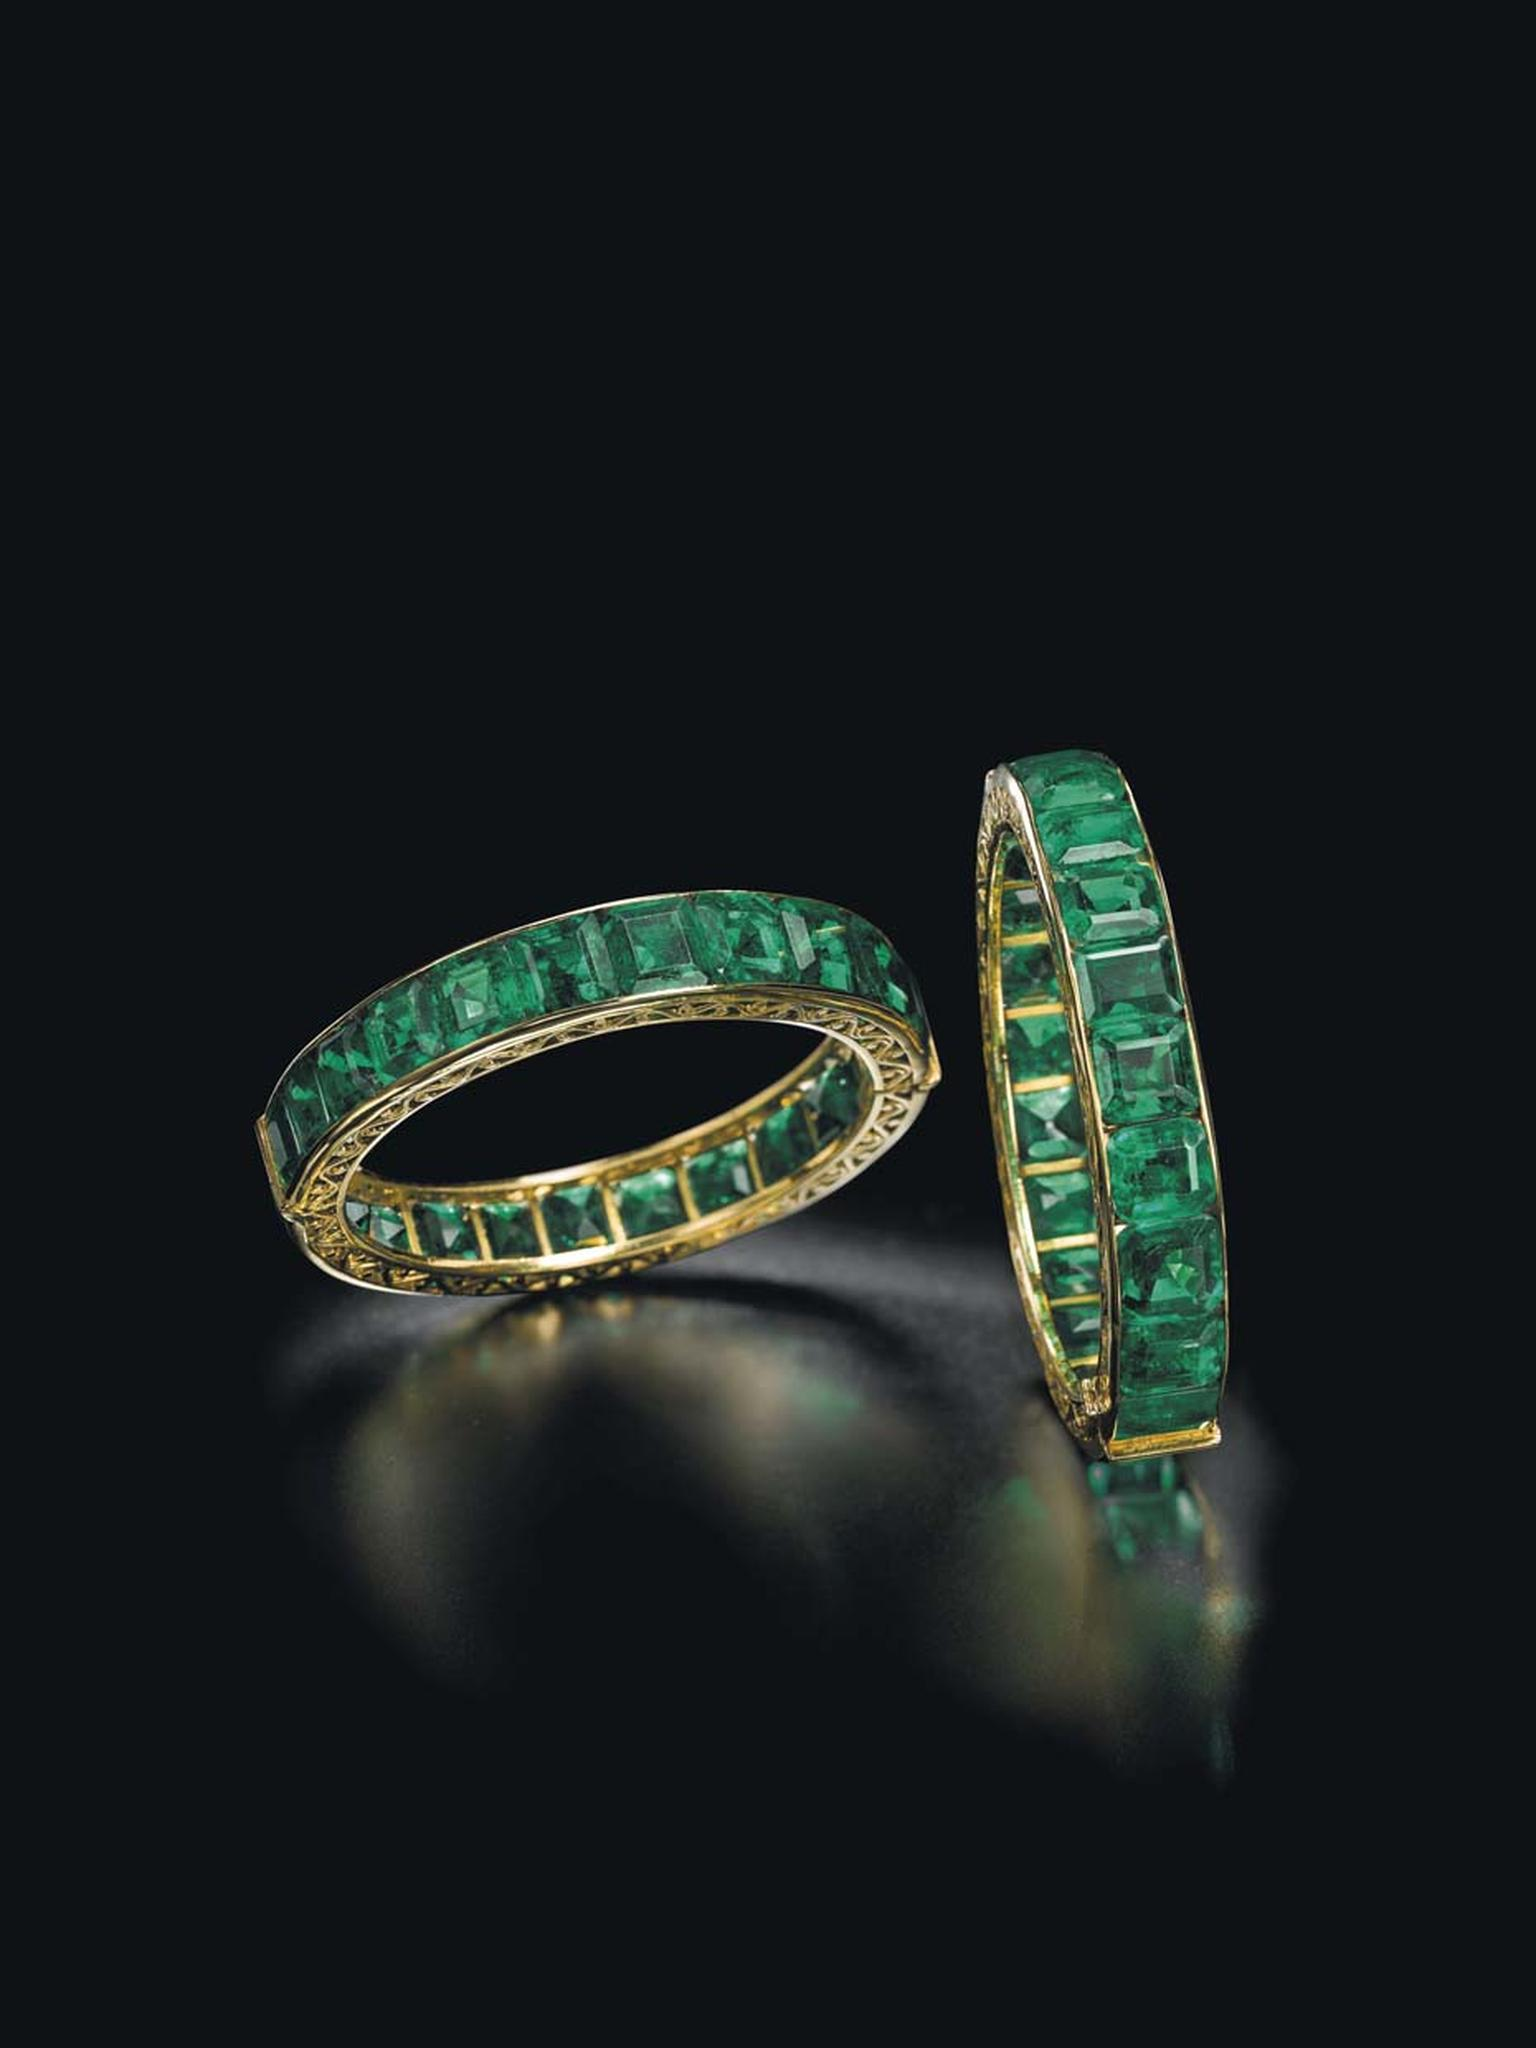 This pair of emerald bracelets, once owned by an Indian Royal family renowned for its enviable collection of emerald jewellery, sold for $1.74 million at Christie's Magnificent Jewels Sale in Geneva.